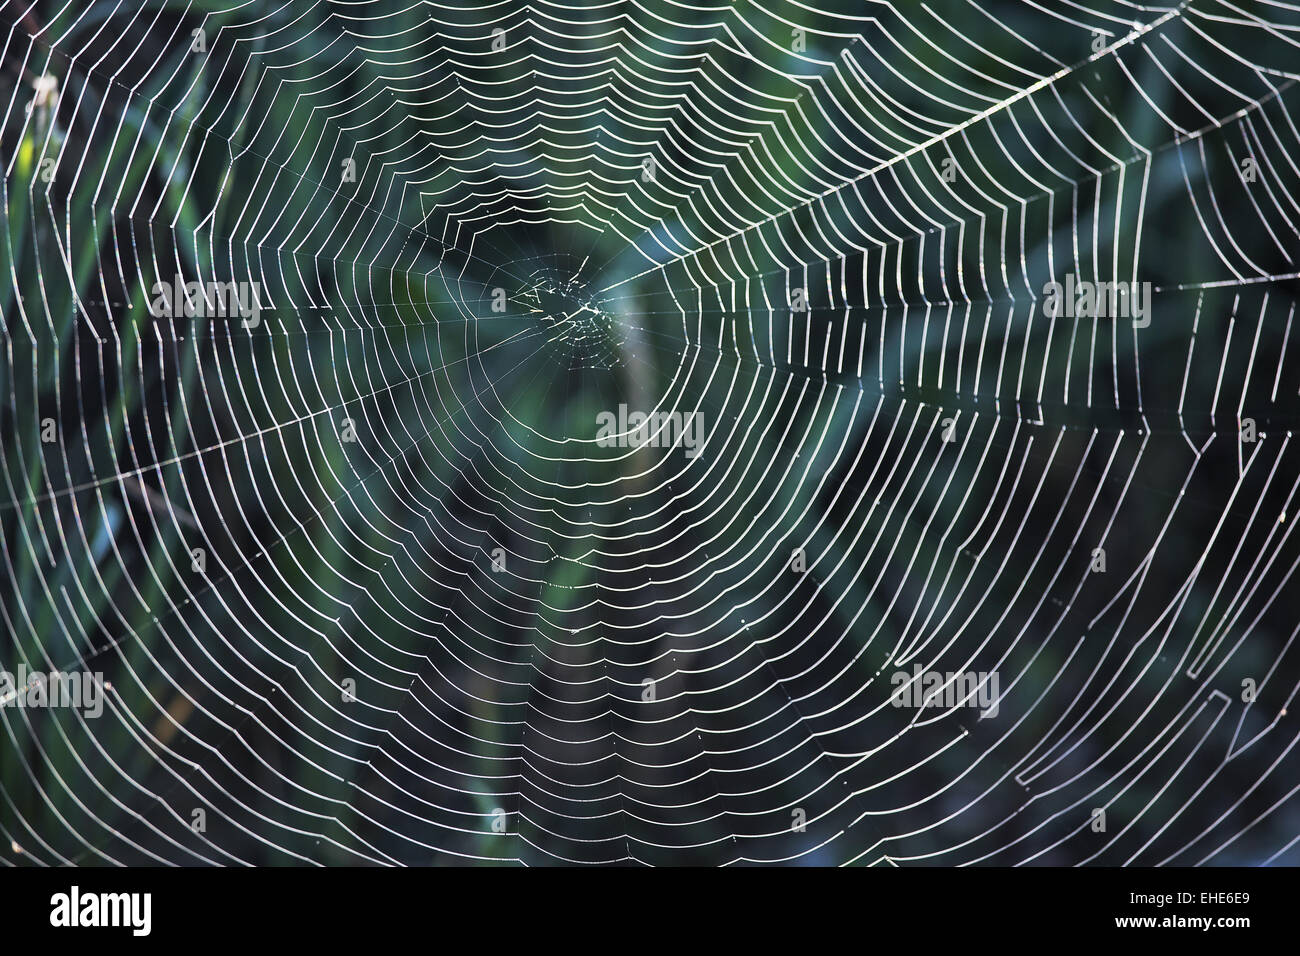 Spider web against the light - Stock Image